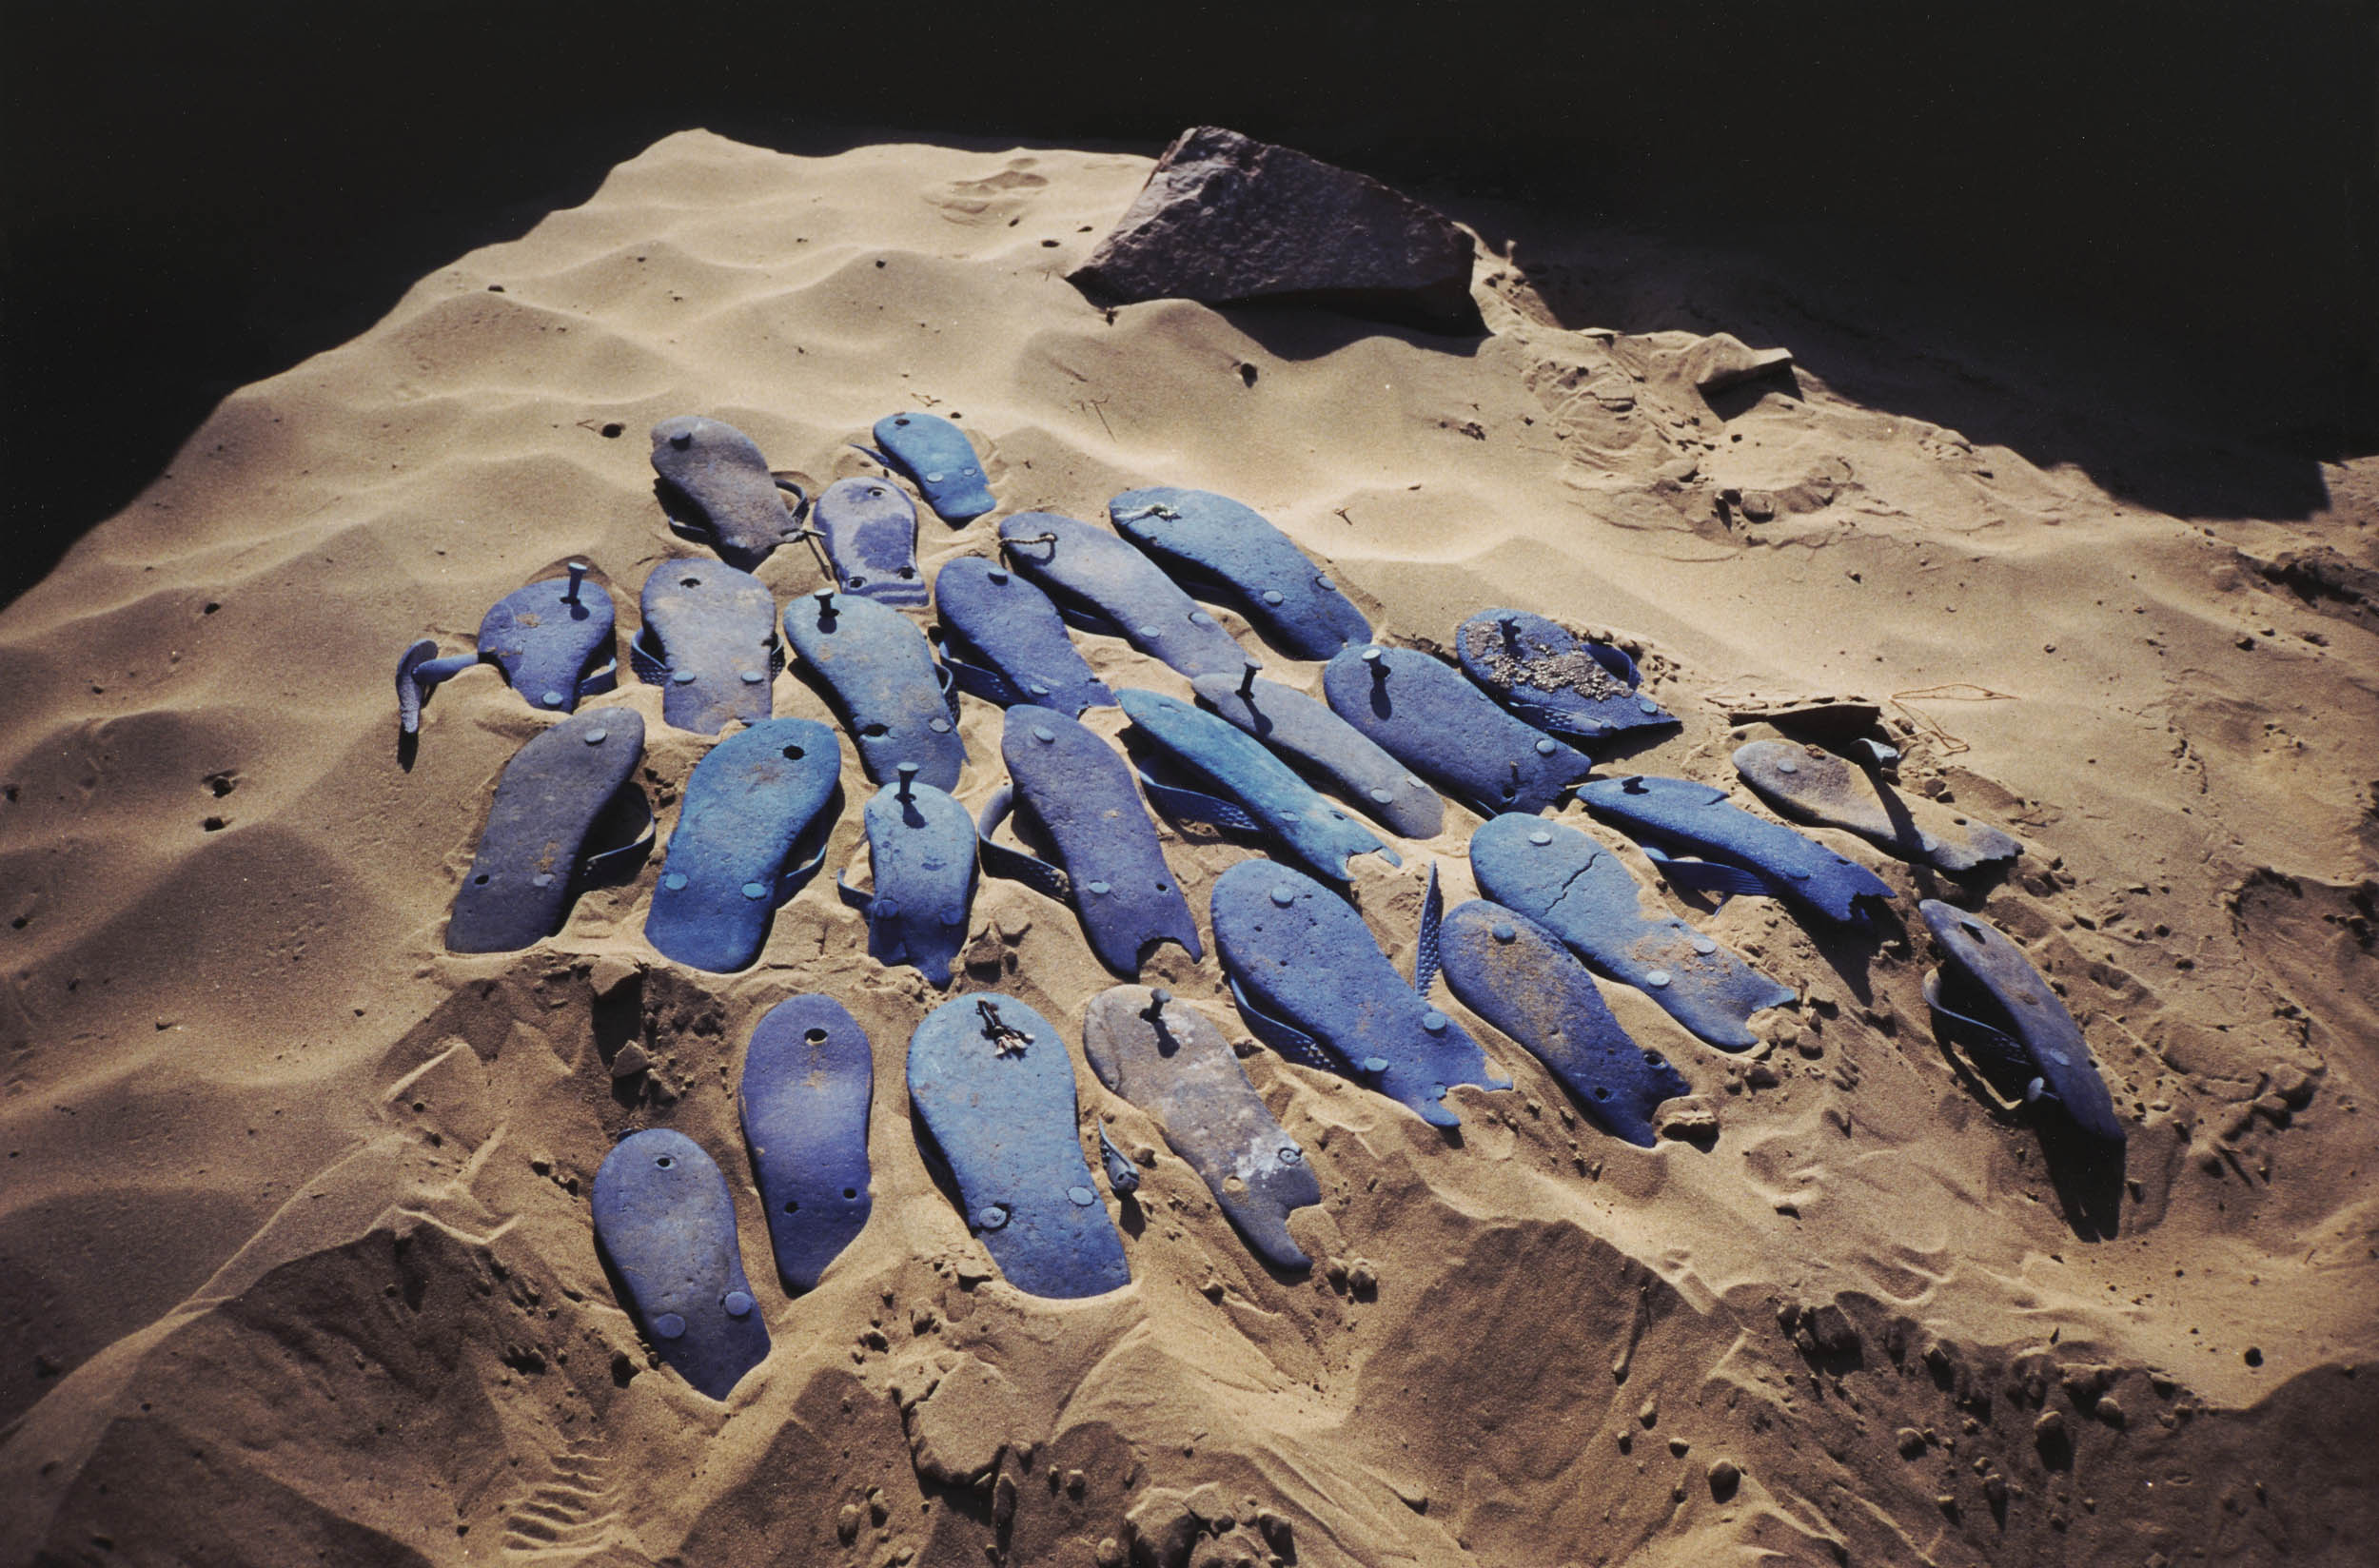 Gabriel Orozco, Blue Sandals, 1996. Cibachrome print. Collection of Institute of Contemporary Art, Miami. Museum Purchase with funds from the Natasha and Jacques Gelman Foundation.